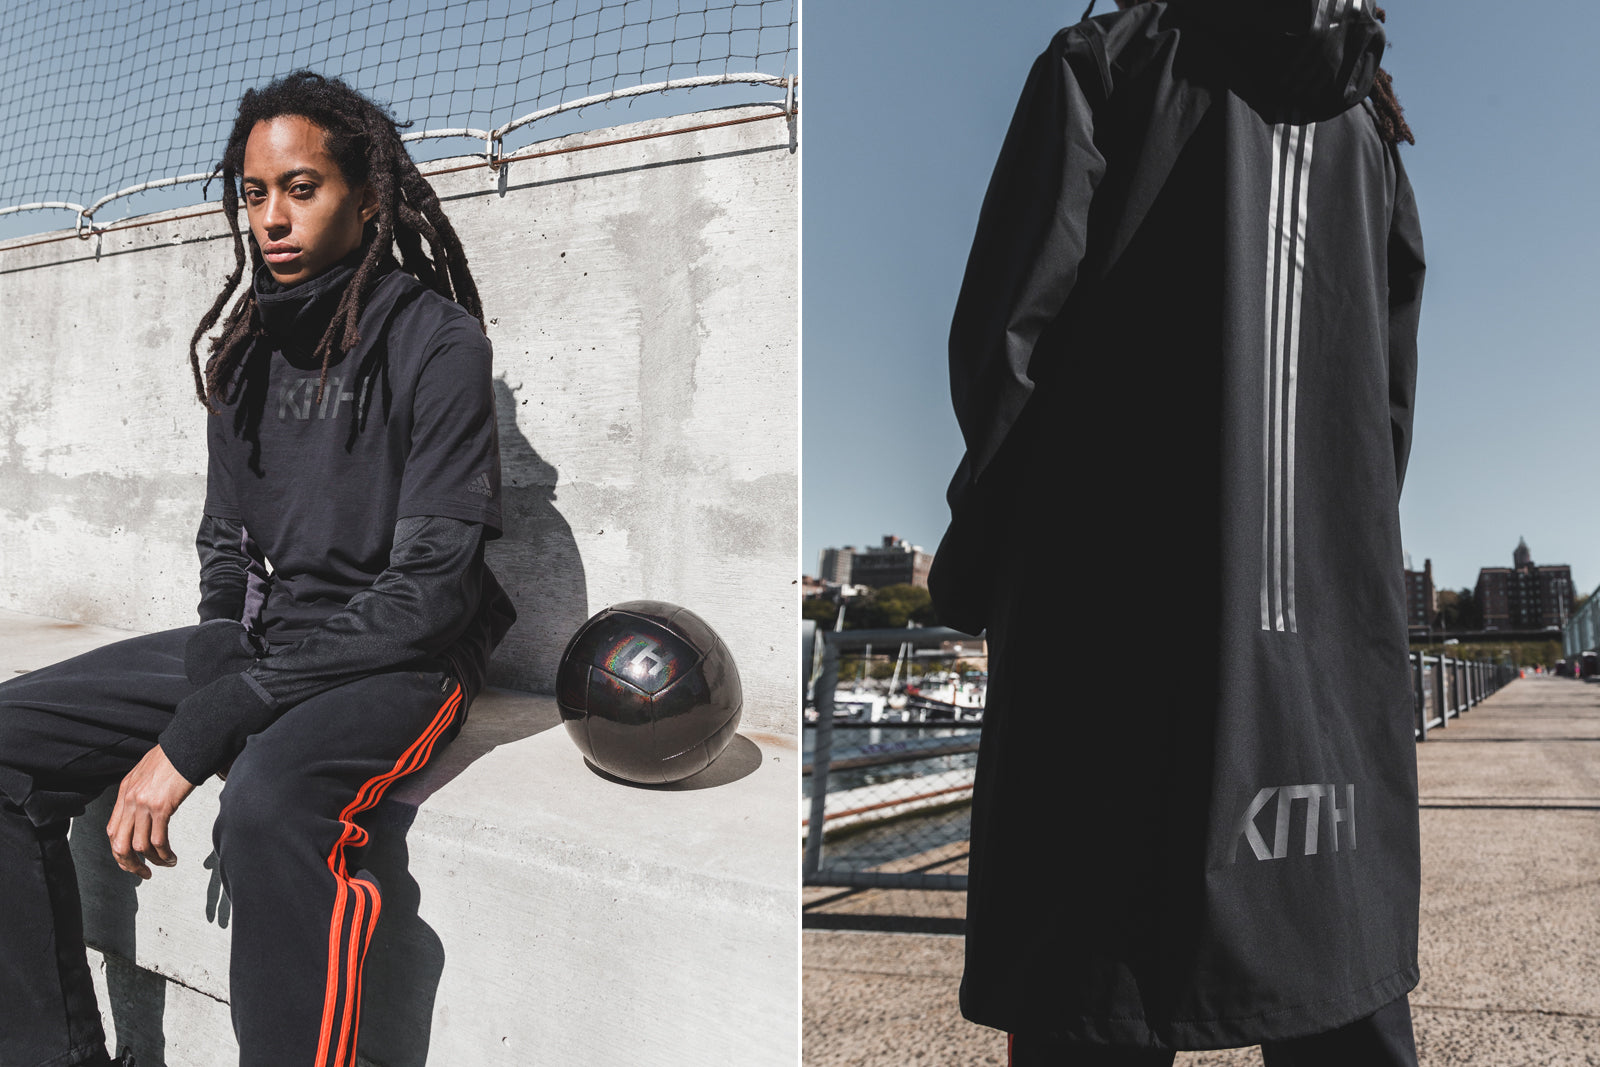 low priced dfada f0d04 Kith x adidas Soccer New York Cobras Lookbook. October 30, 2017. -11